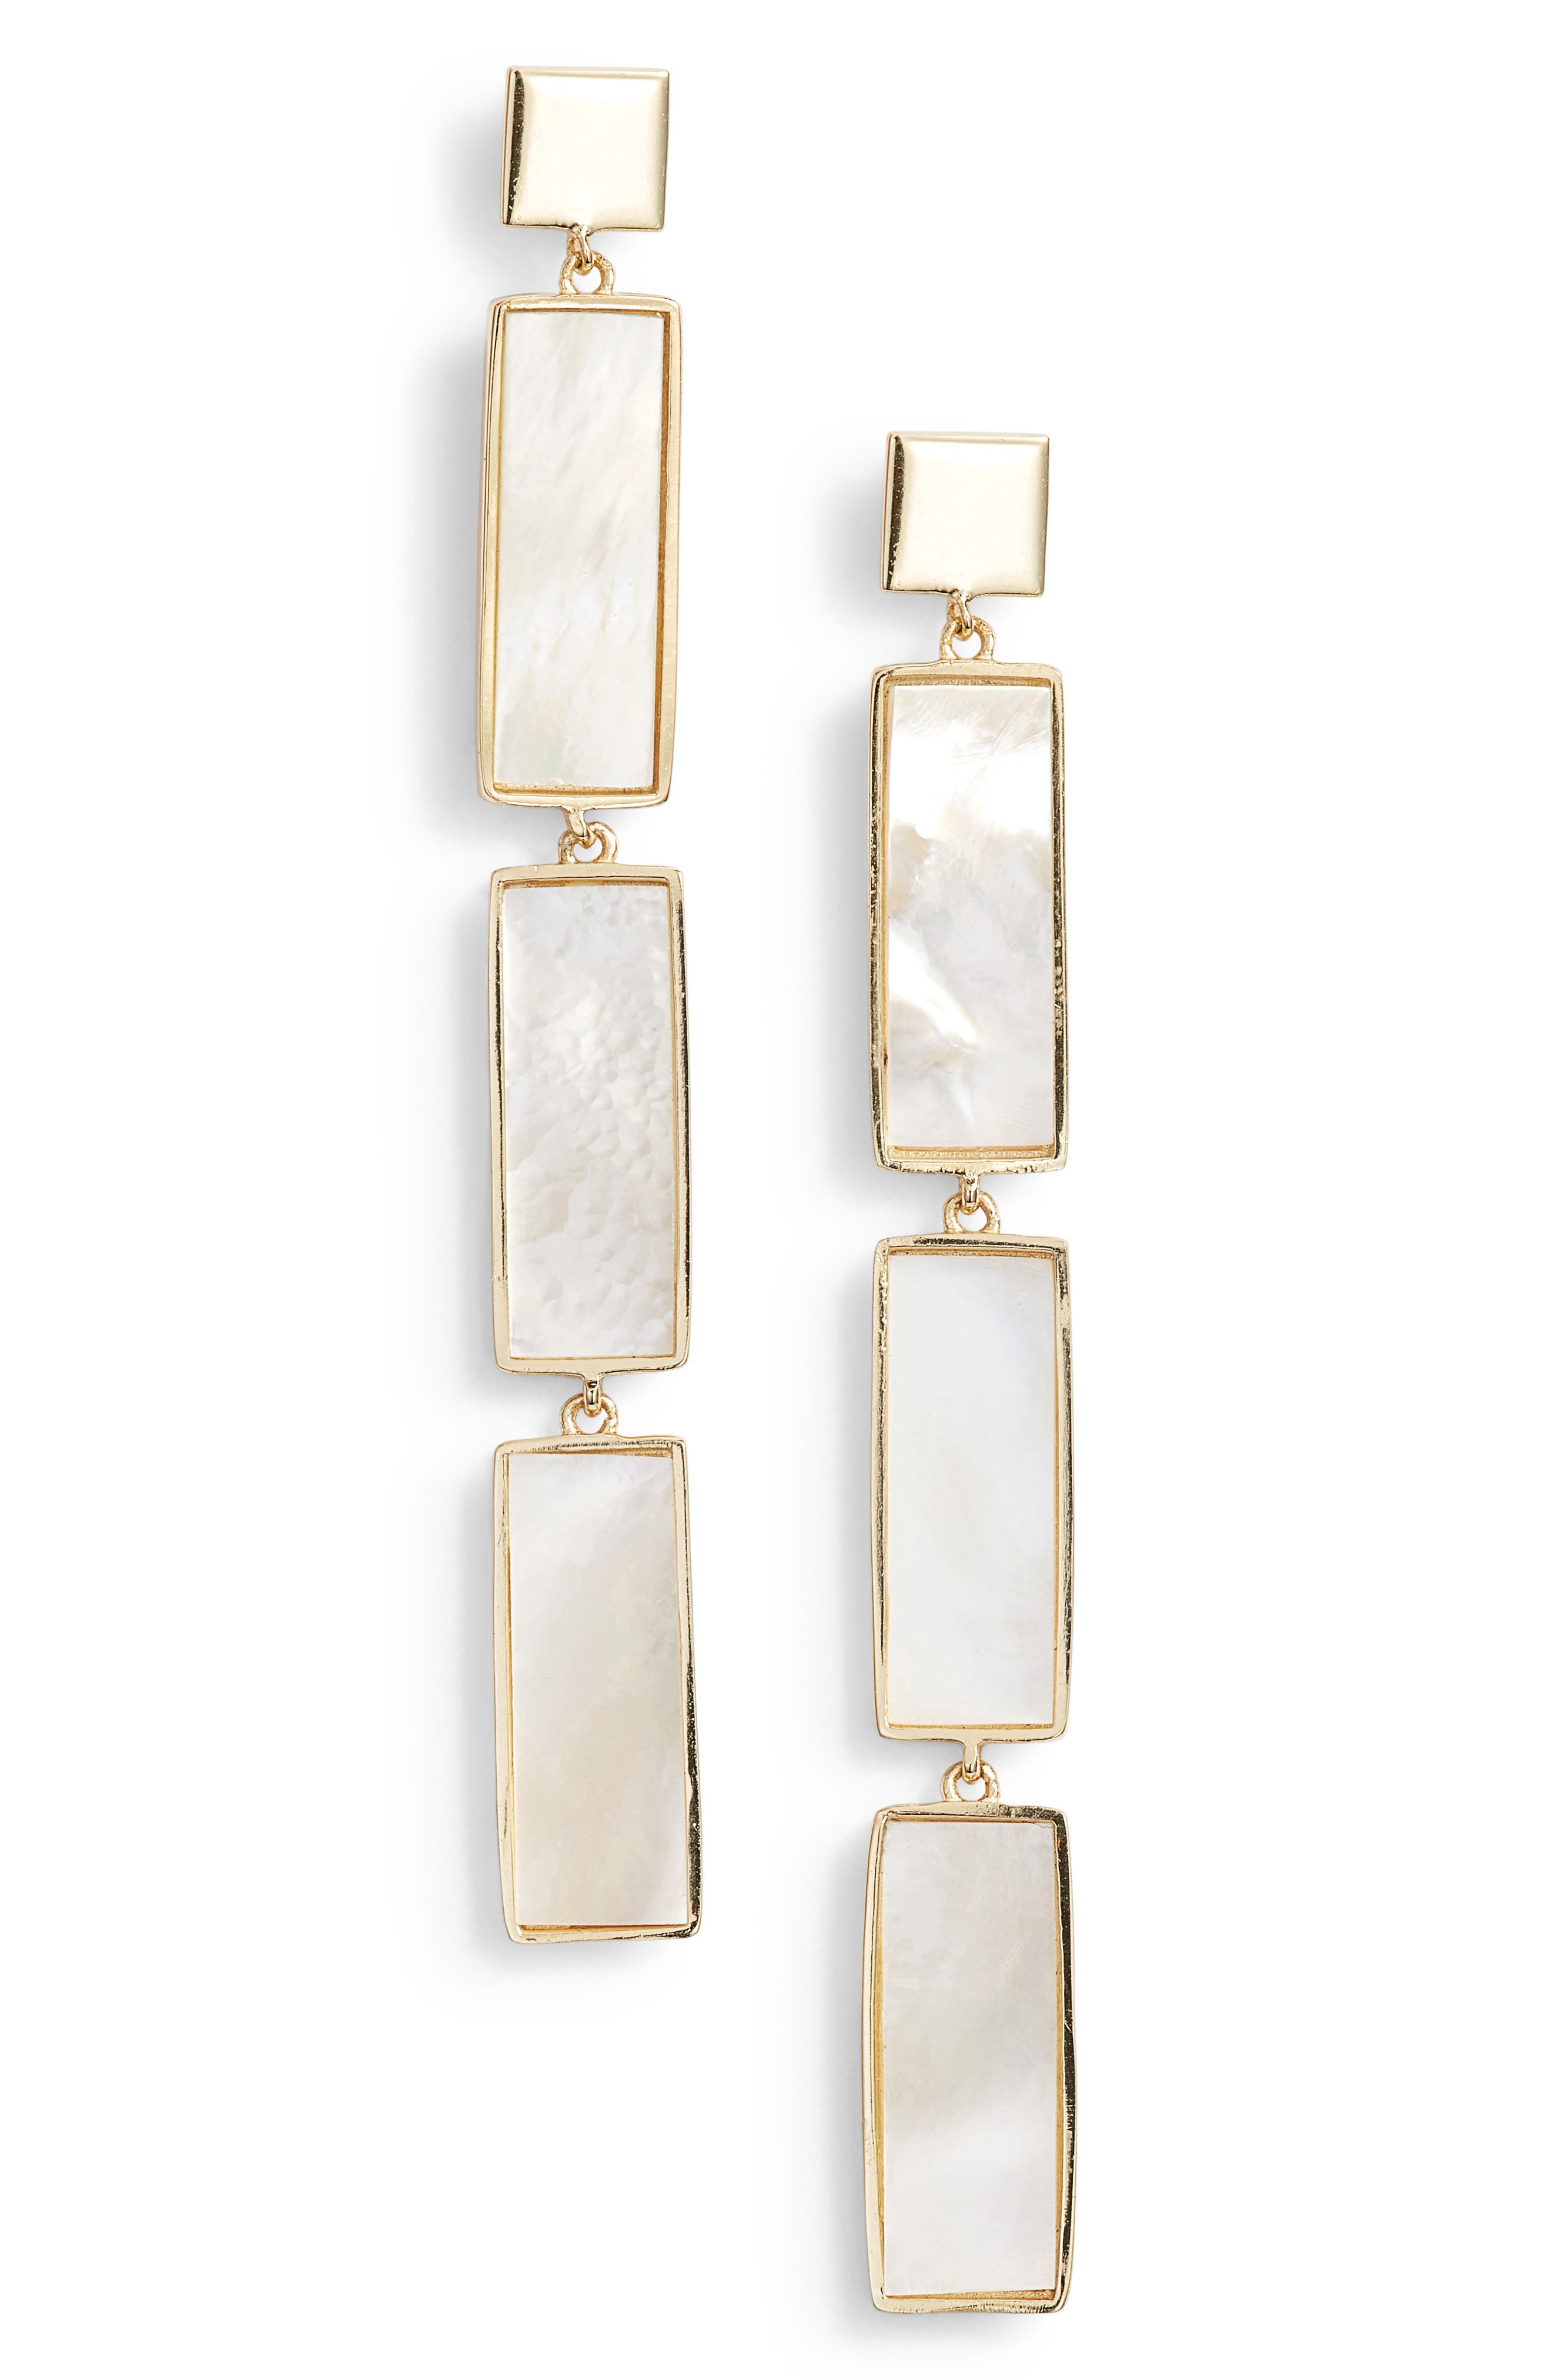 ARGENTO VIVO Geometric Mother-Of-Pearl Linear Drop Earrings In 18K Gold-Plated Sterling Silver in Mother Of Pearl/ Gold